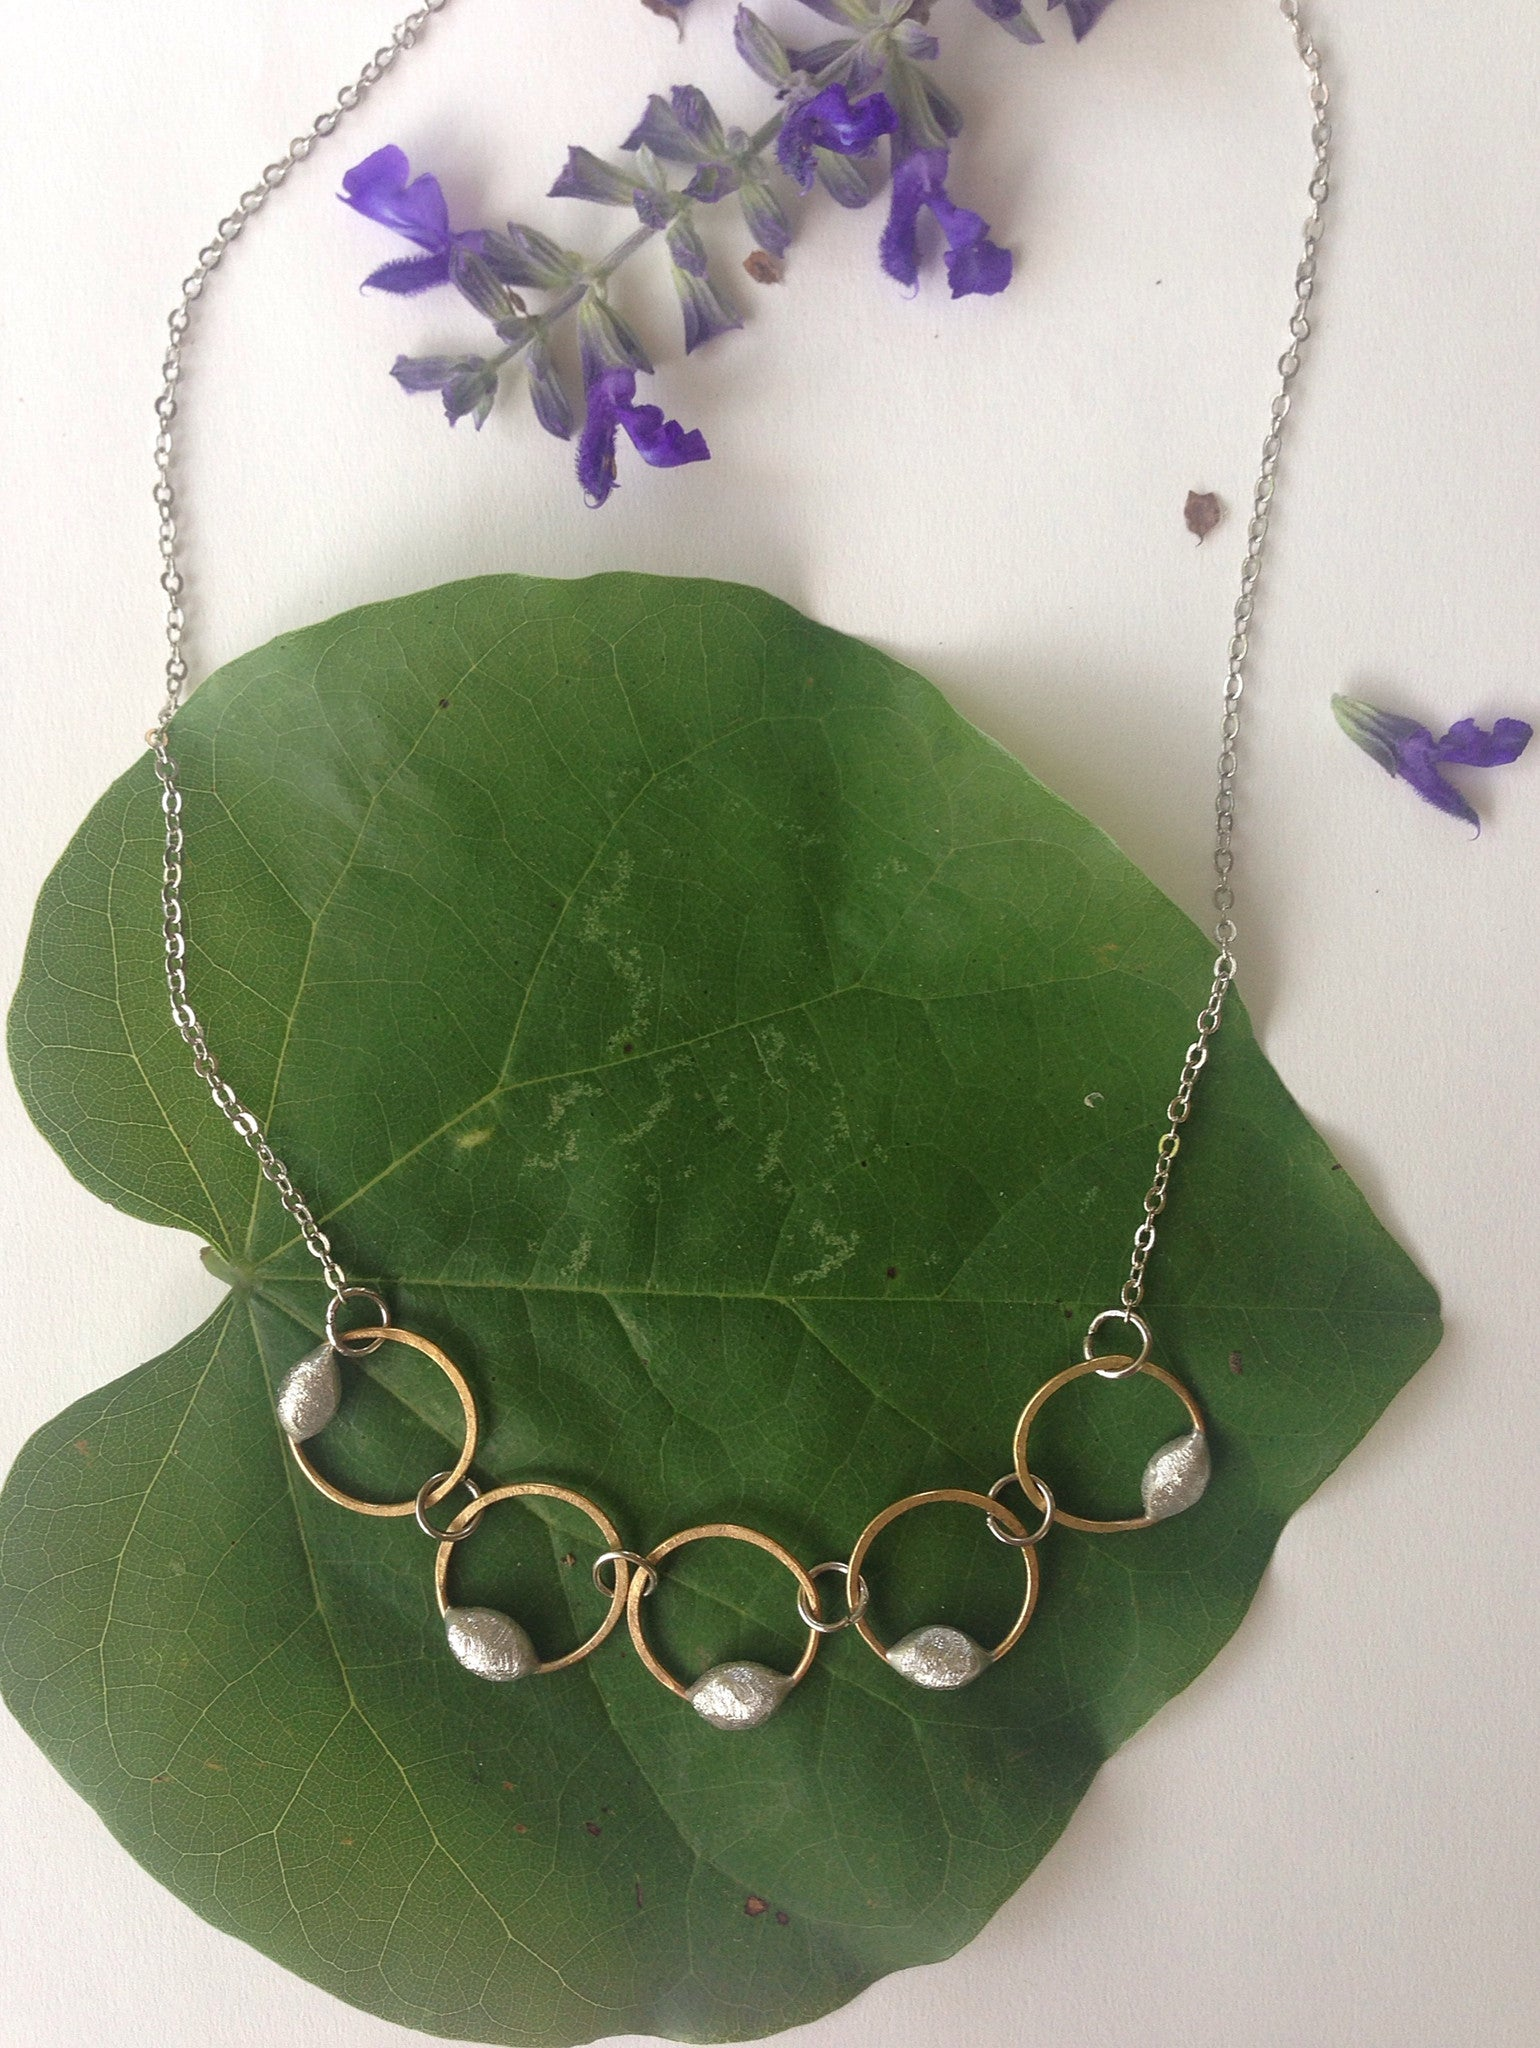 Le Petit Cinq Necklace